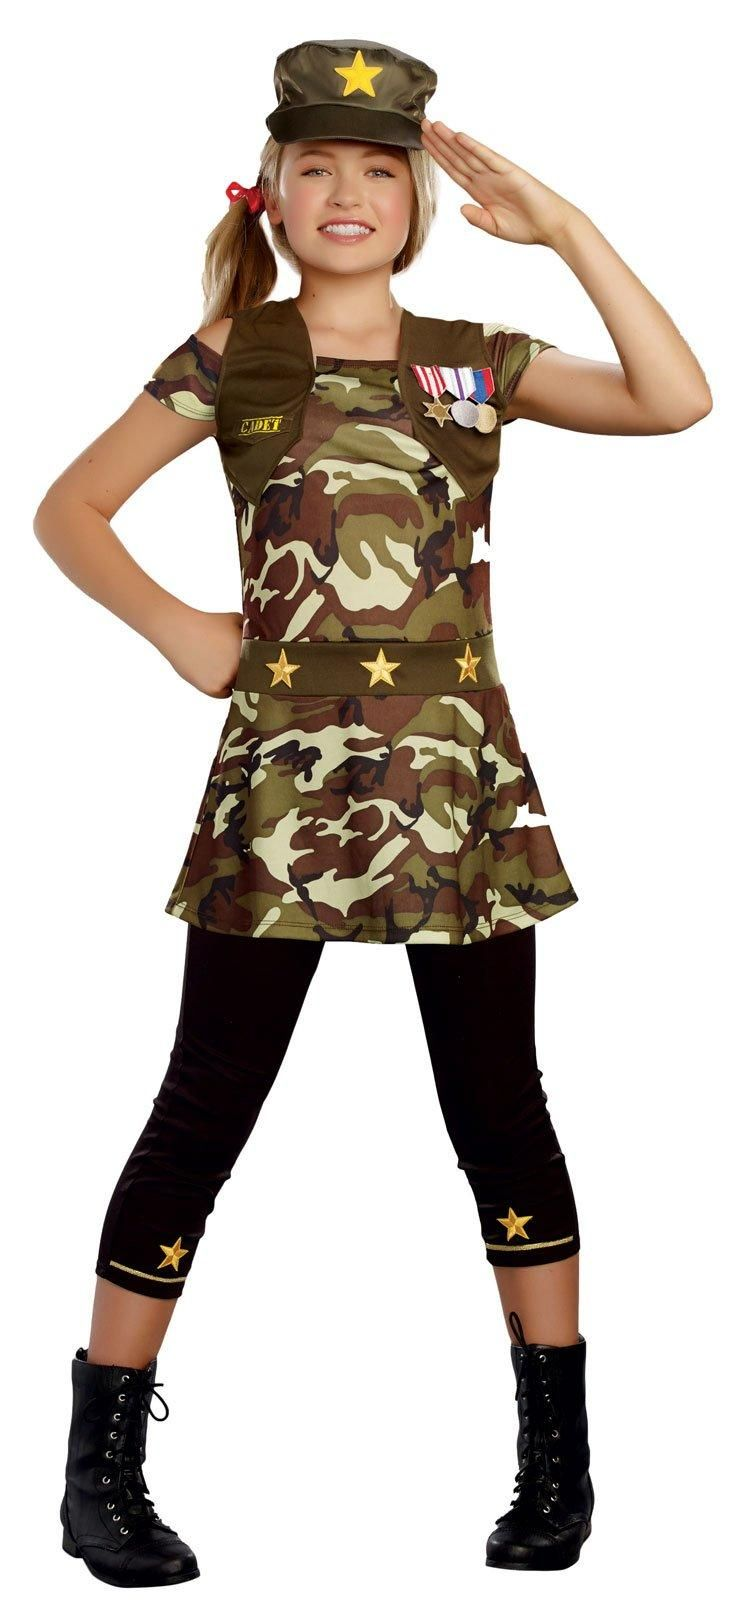 Cadet Cutie Costume For Tweens from Buycostumes.com ...